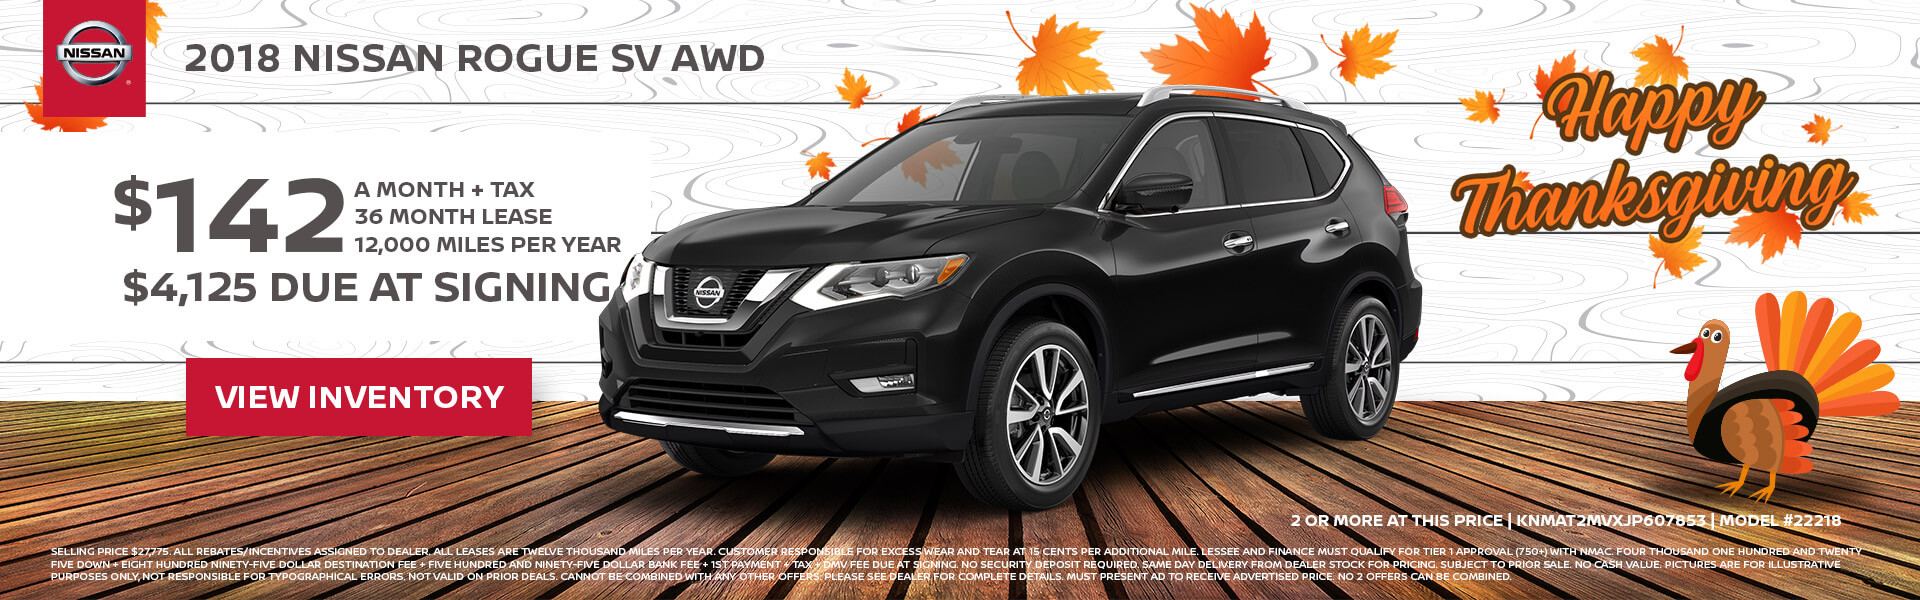 Nissan Rogue $142 Lease